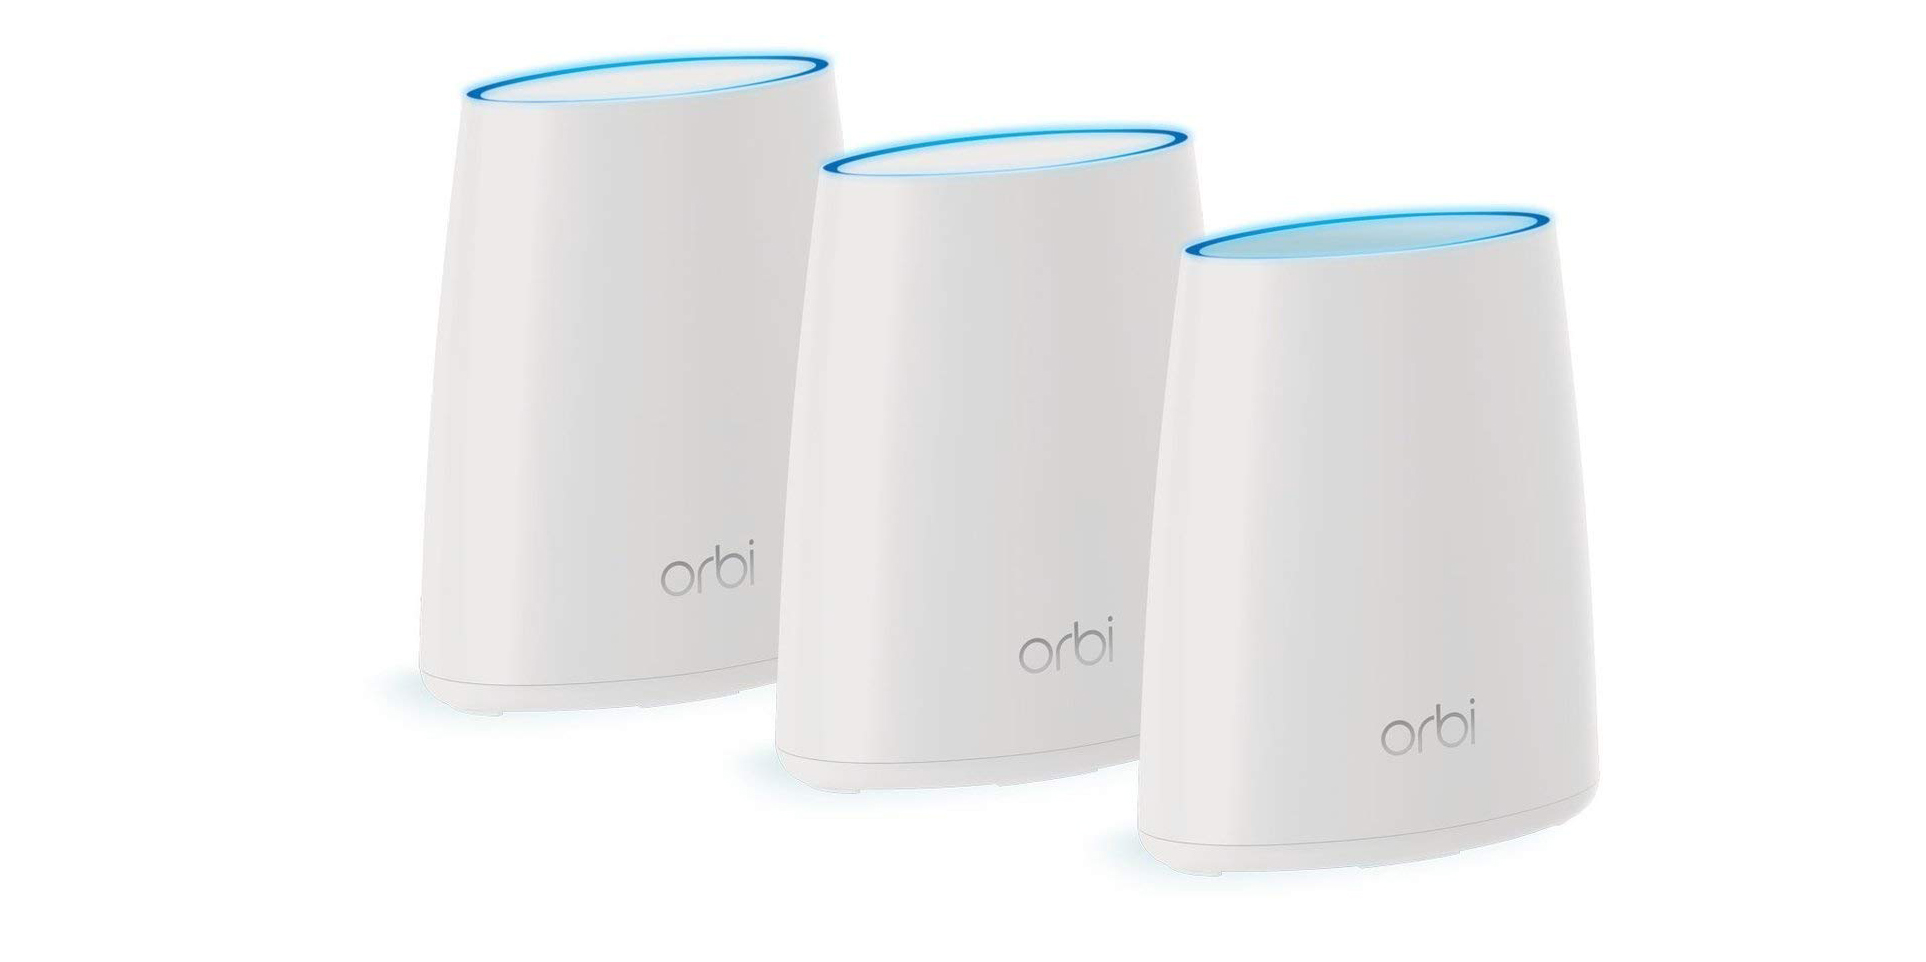 NETGEAR Orbi mesh system covers 6,000-sq. ft. with 802.11ac: $200 (Reg. $250+) - 9to5Toys